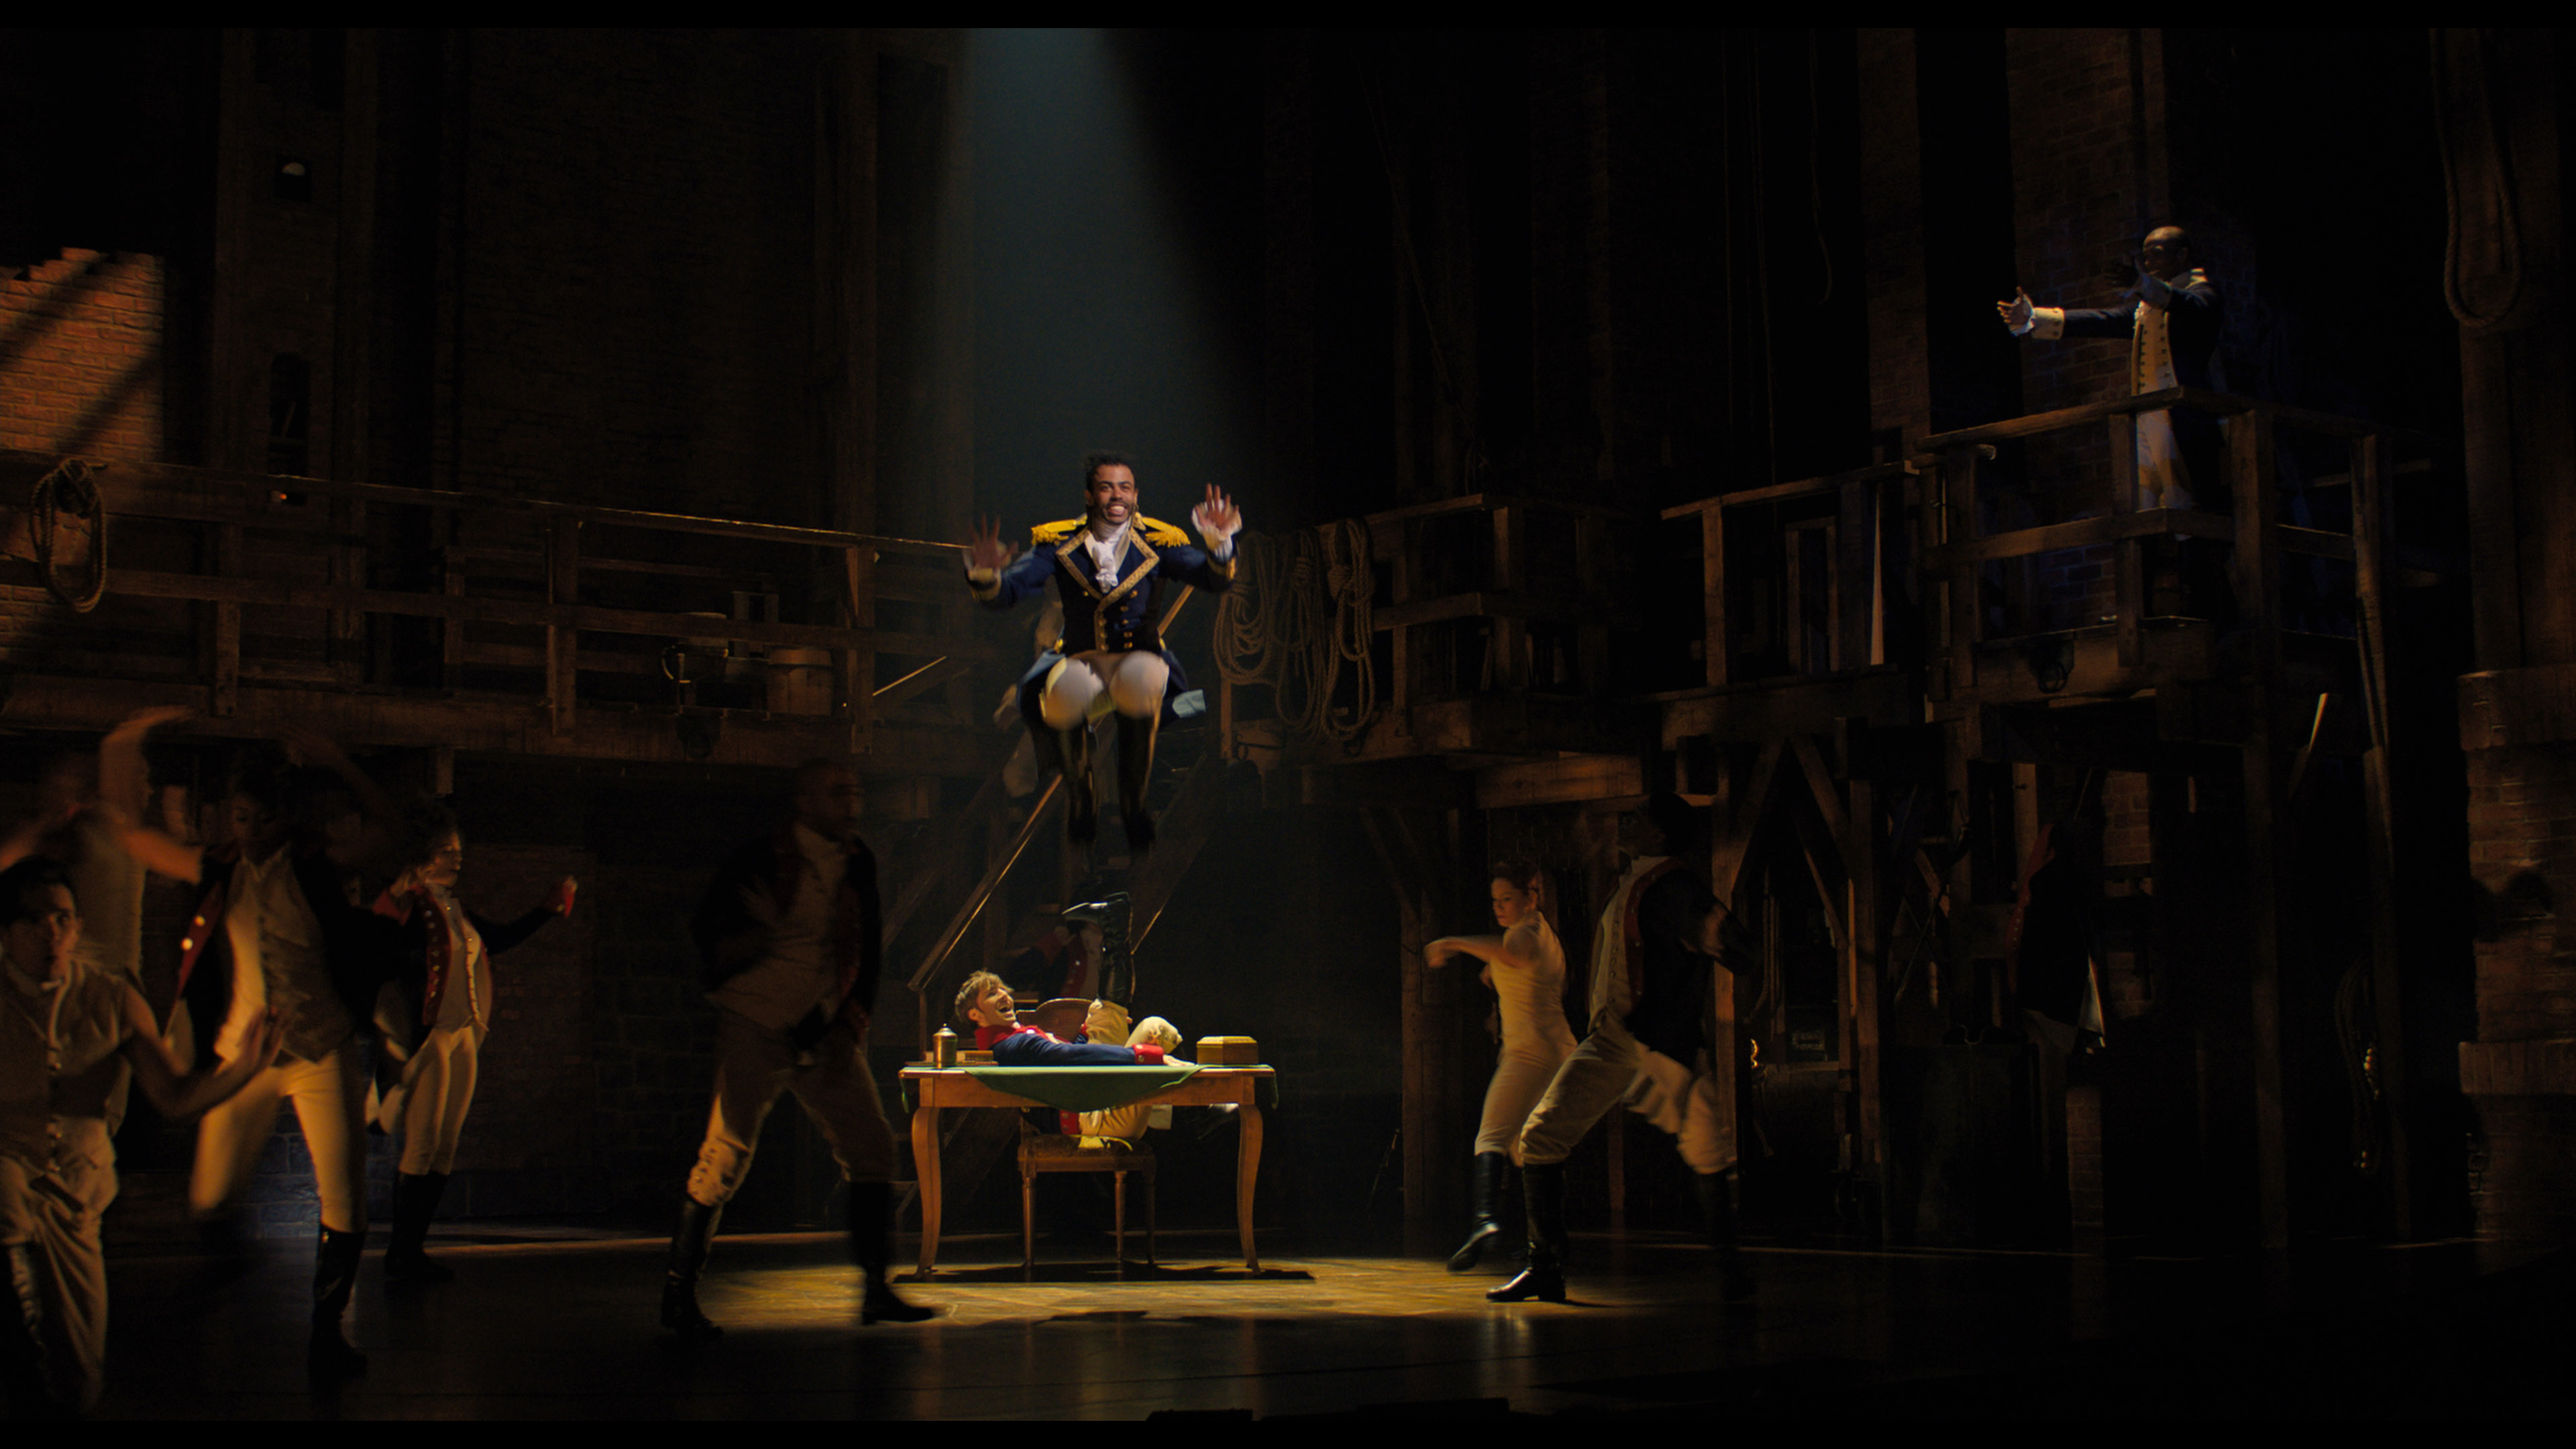 ART OF THE CUT with the editor of Hamilton 17